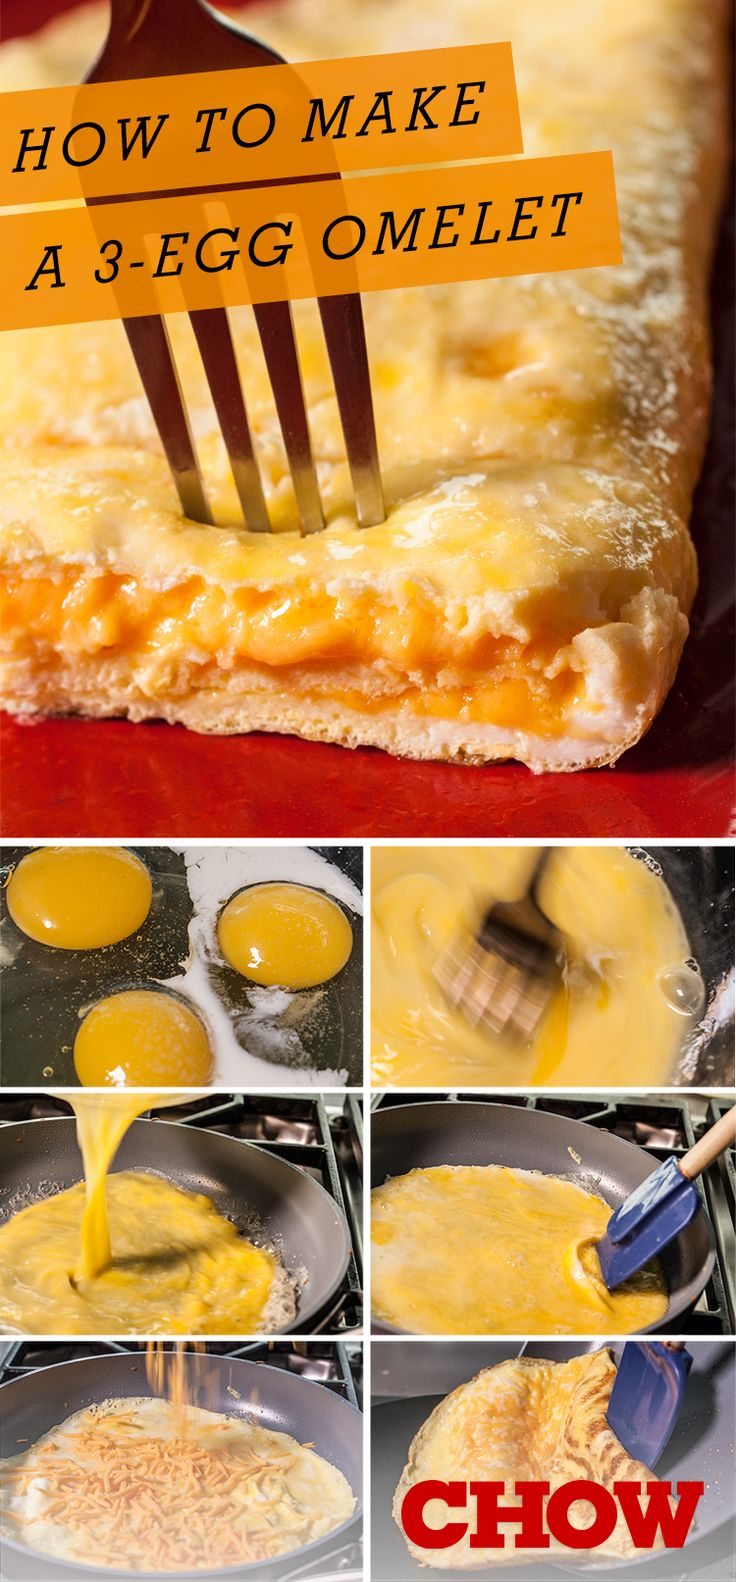 Best brunch recipes | How to Make the Ultimate Omelet, Plus 8 Great Omelet Recipes